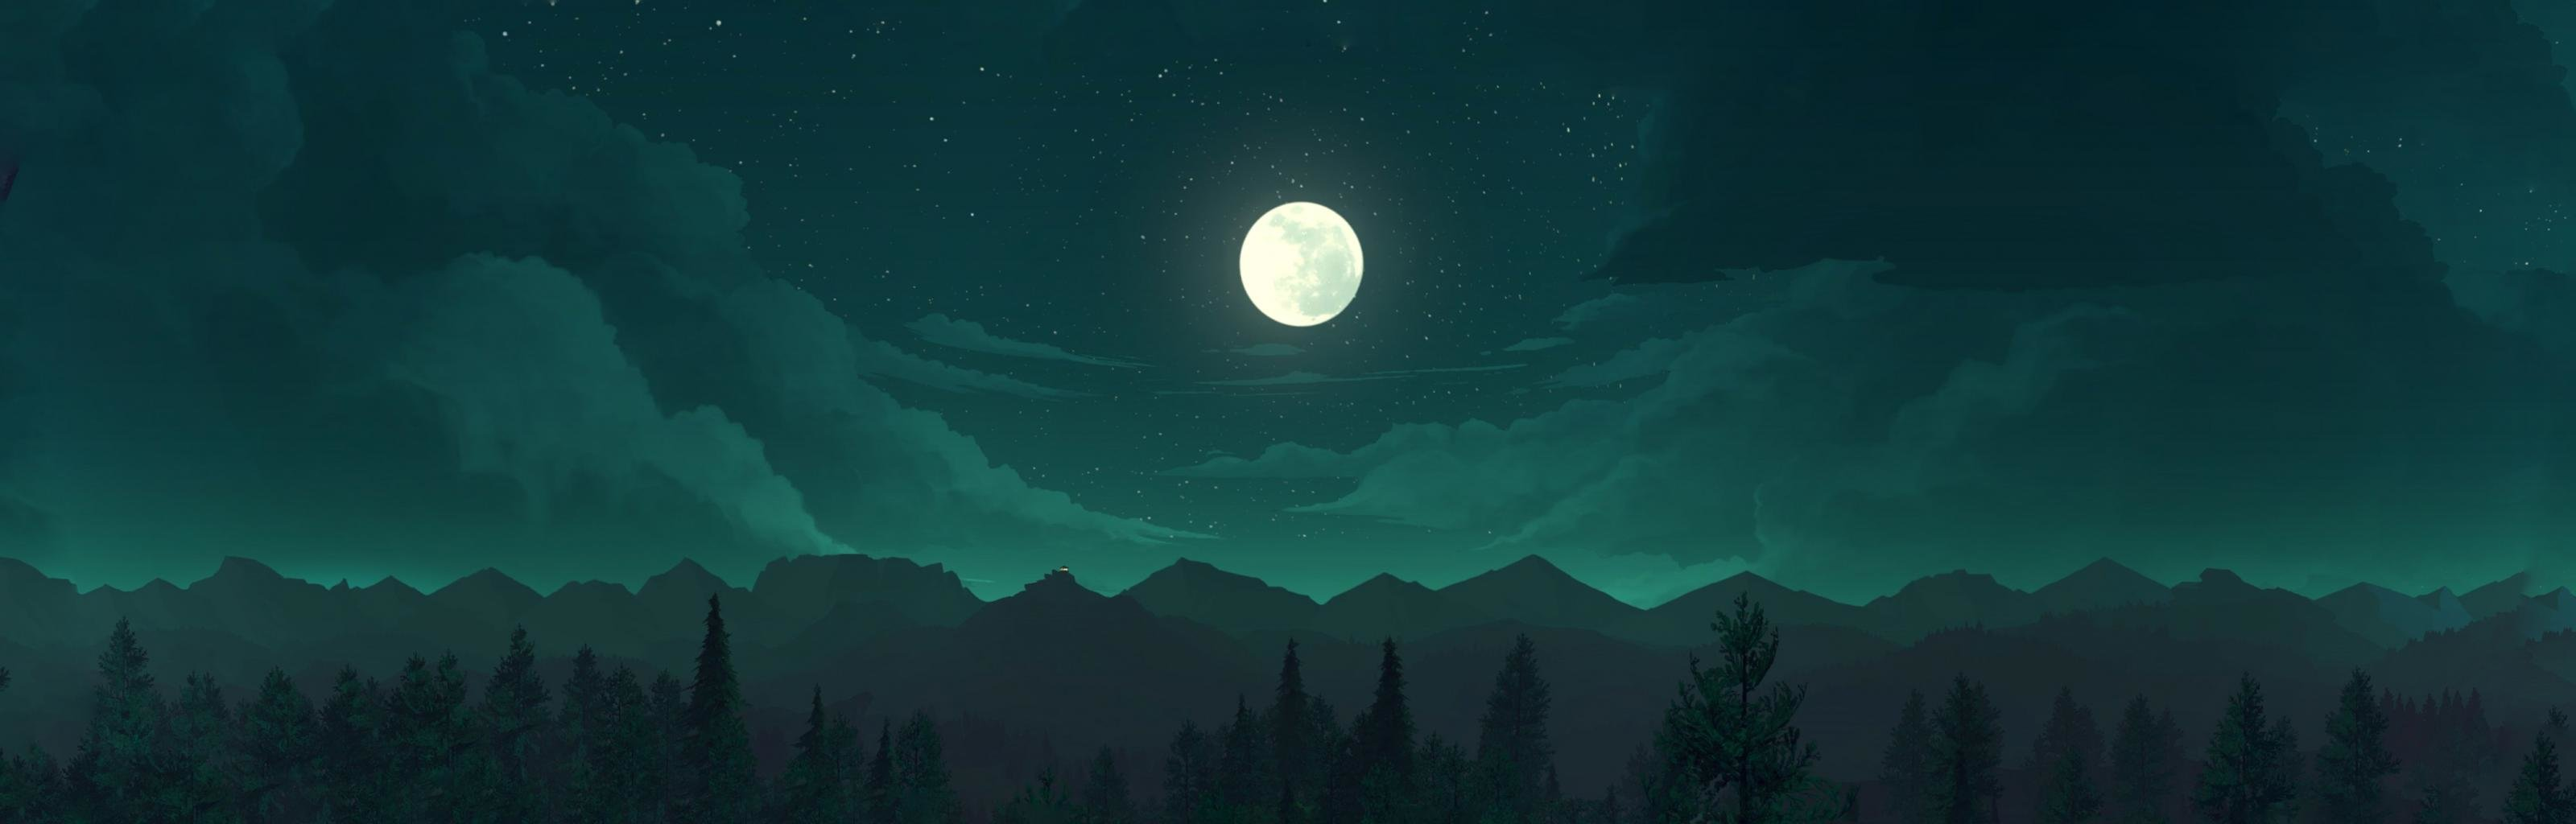 Dual Monitor Firewatch Wallpapers Hd Backgrounds